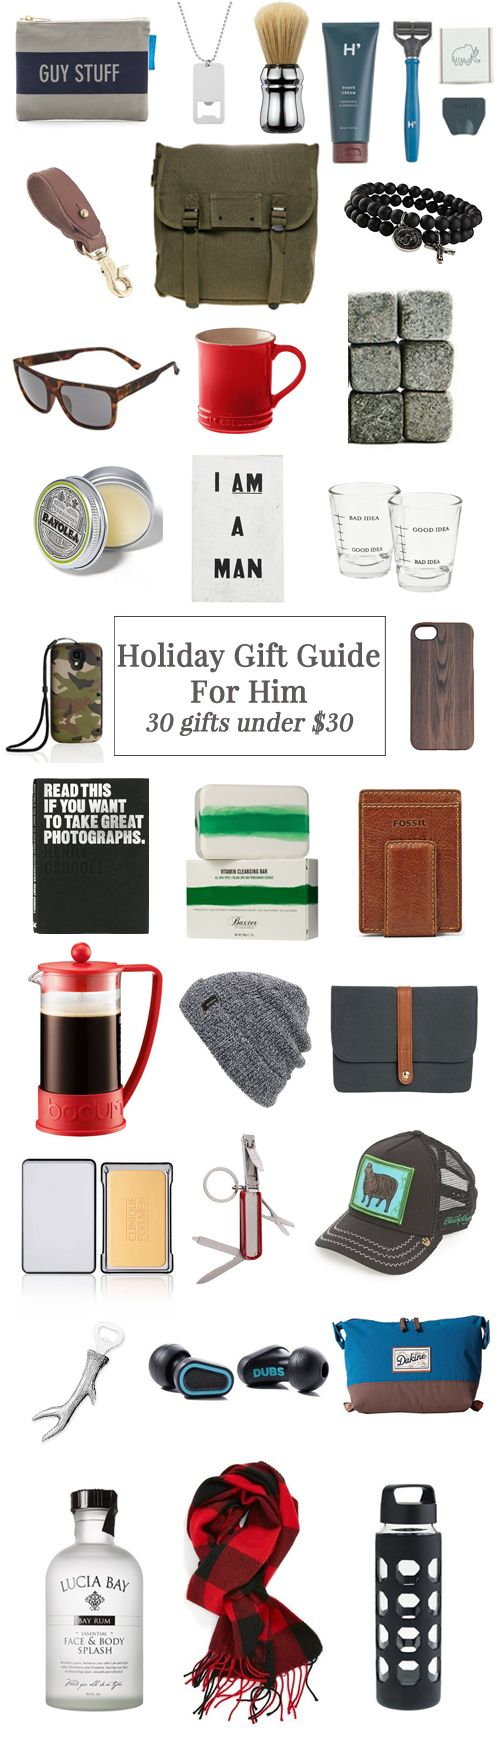 20 Gifts for Your New Boyfriend 2018 - Gift Ideas for Your ...